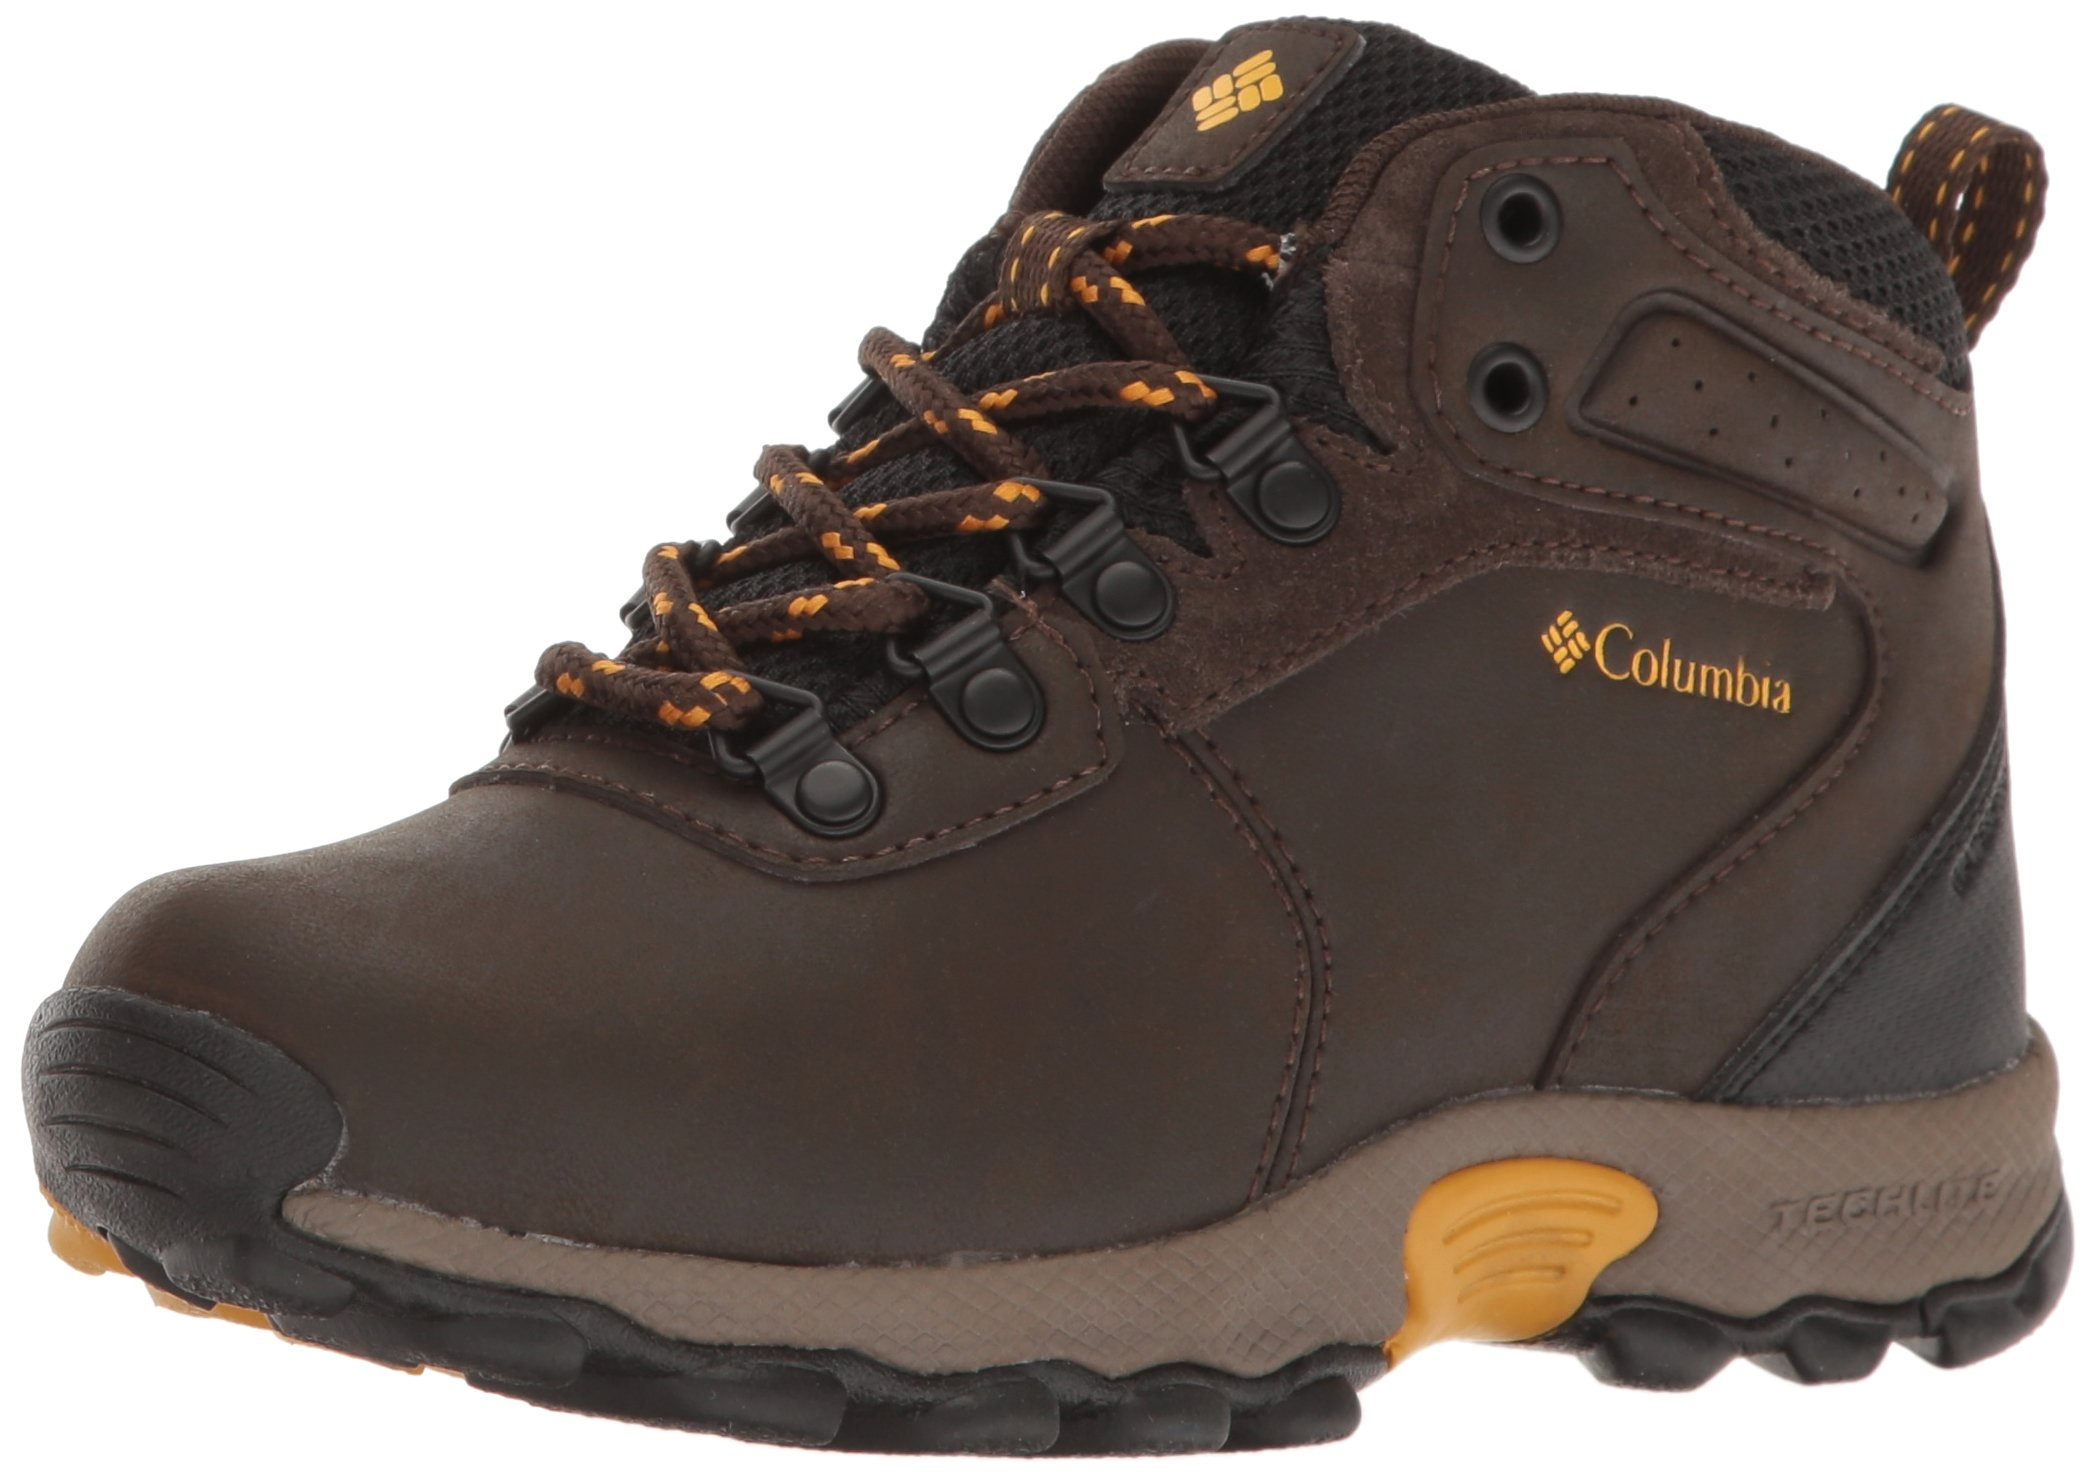 Columbia Unisex Youth Newton Ridge Hiking Shoe, Cordovan, Golden Yellow, 4 Regular US Big Kid